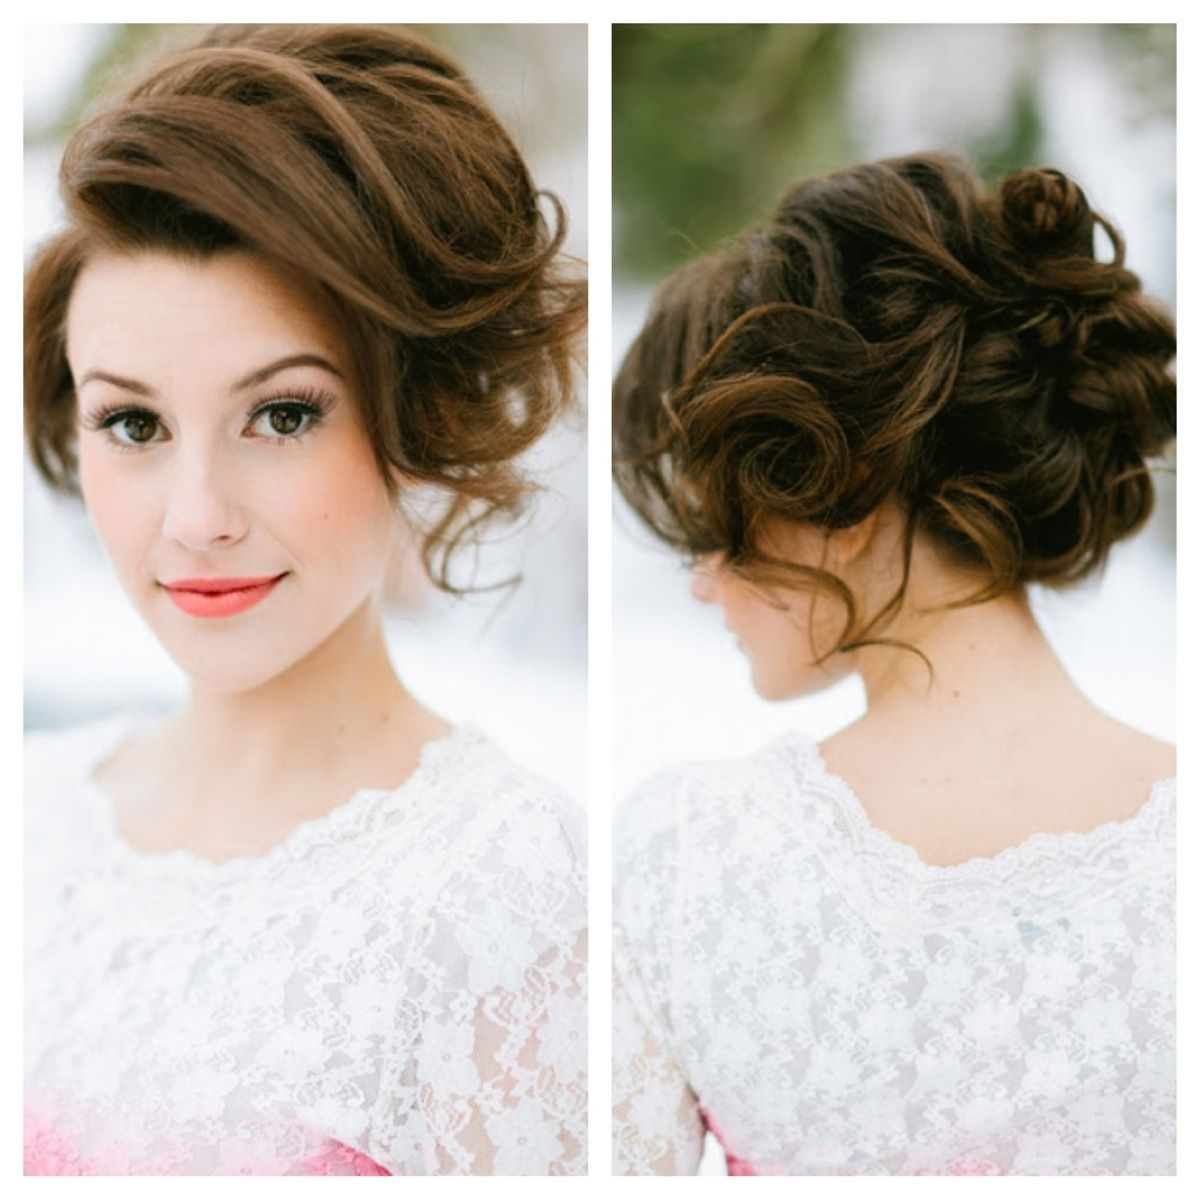 30 Hottest Bridesmaid Hairstyles For Long Hair | Bridesmaid hair ...